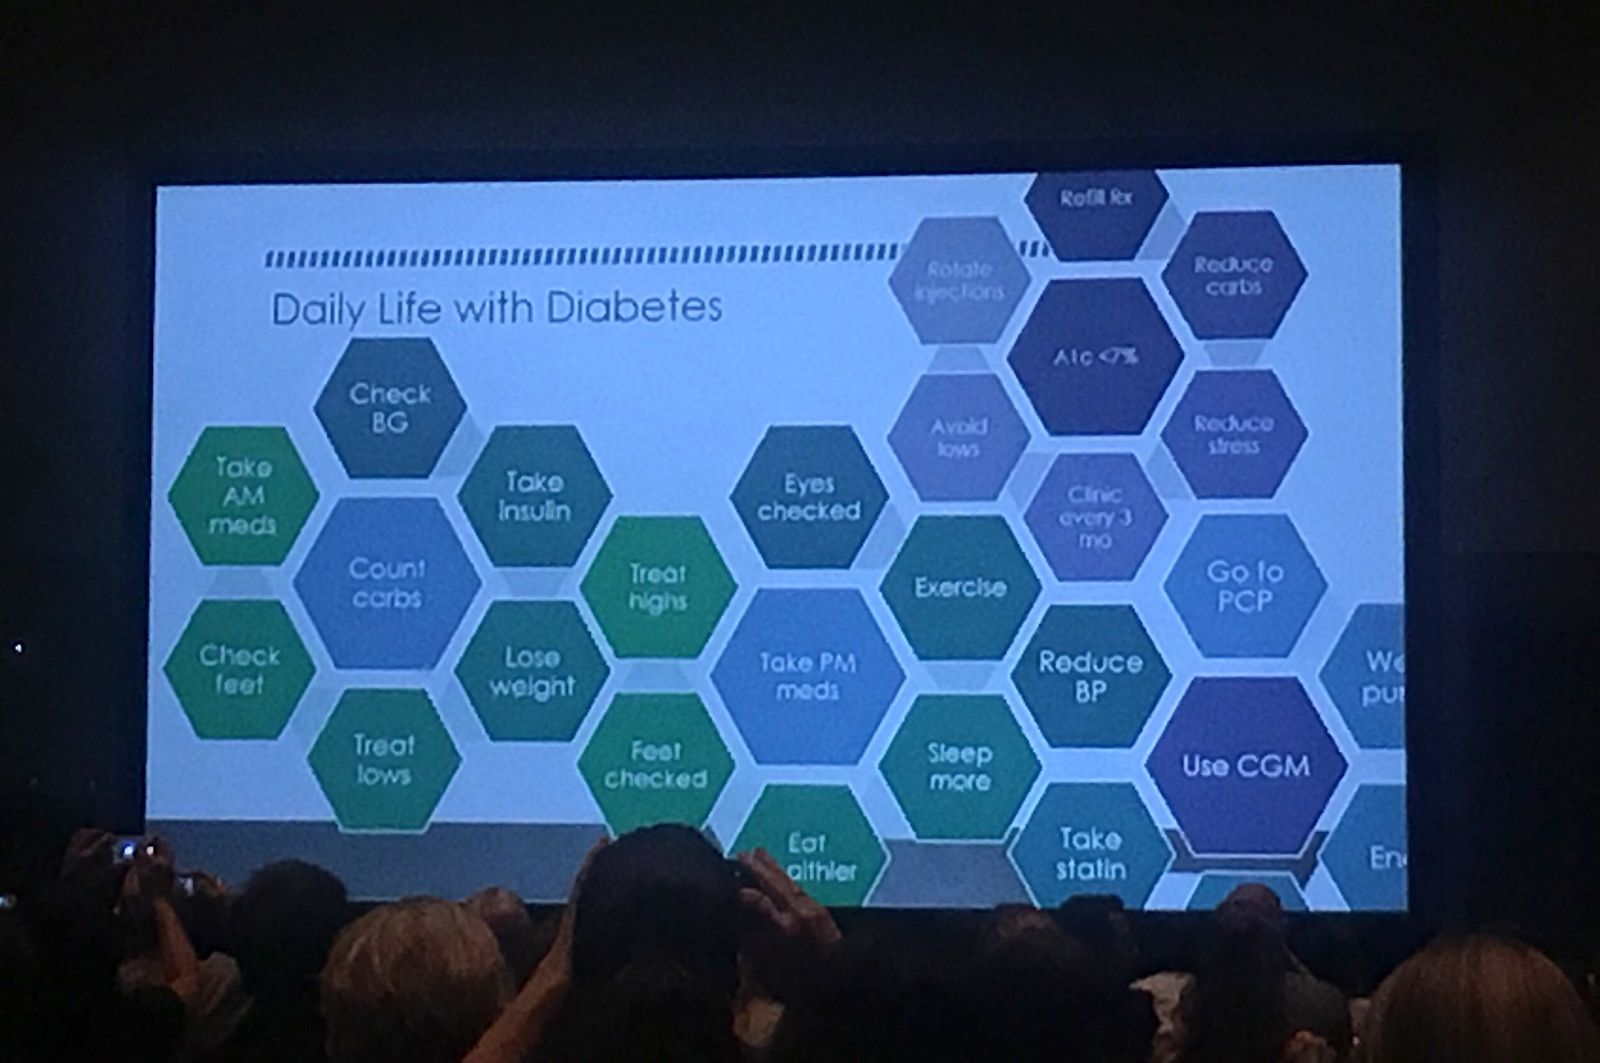 images Highlights From the 2019 ADA Scientific Sessions: Diabetes and Autism Link, Unaffordable Insulin, Artificial Pancreas Success, and More